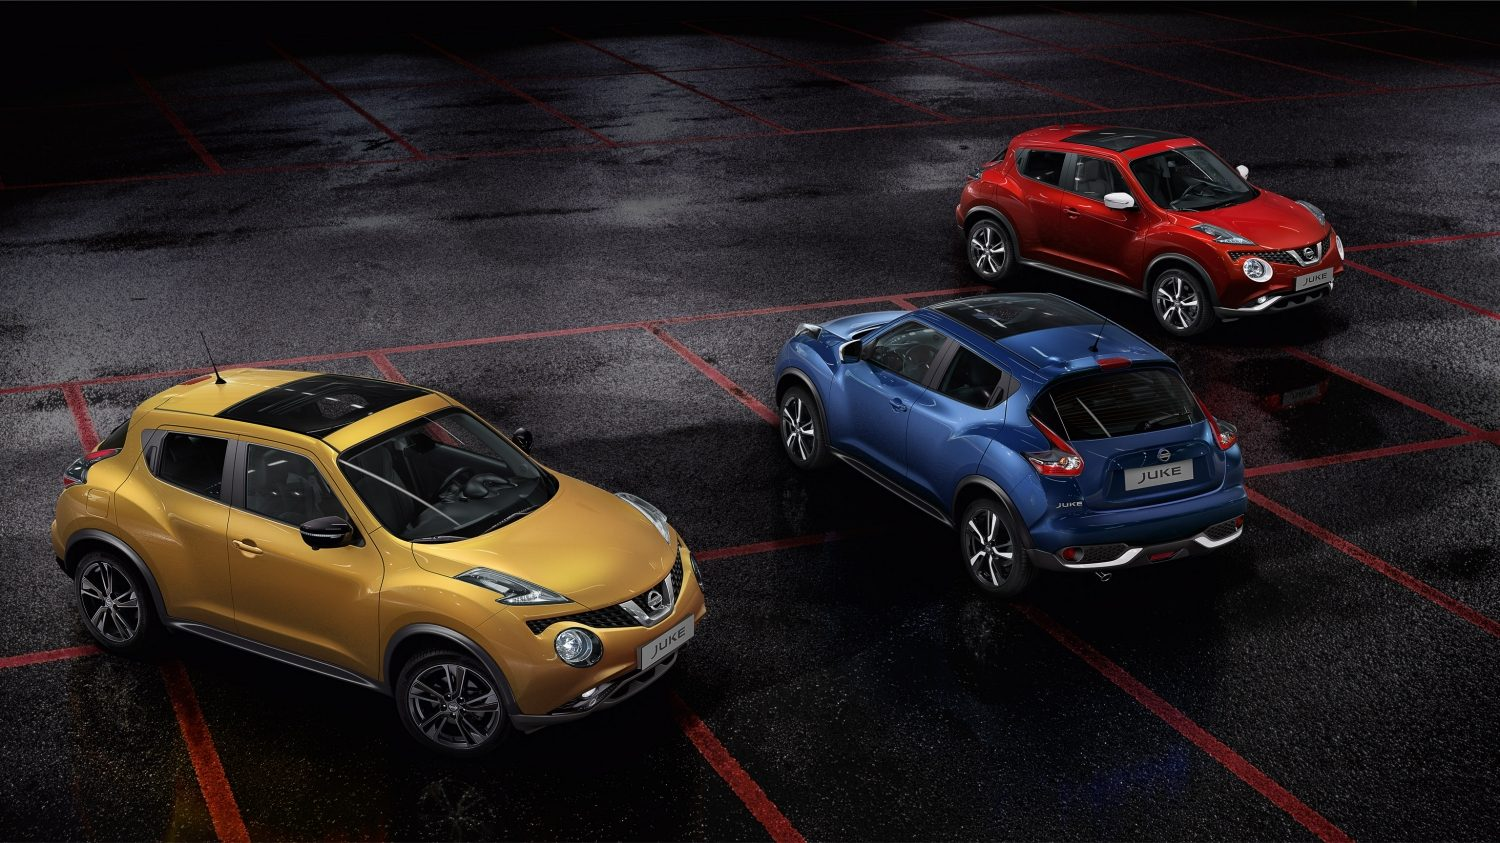 Nissan Juke | The Juke Colour Studio